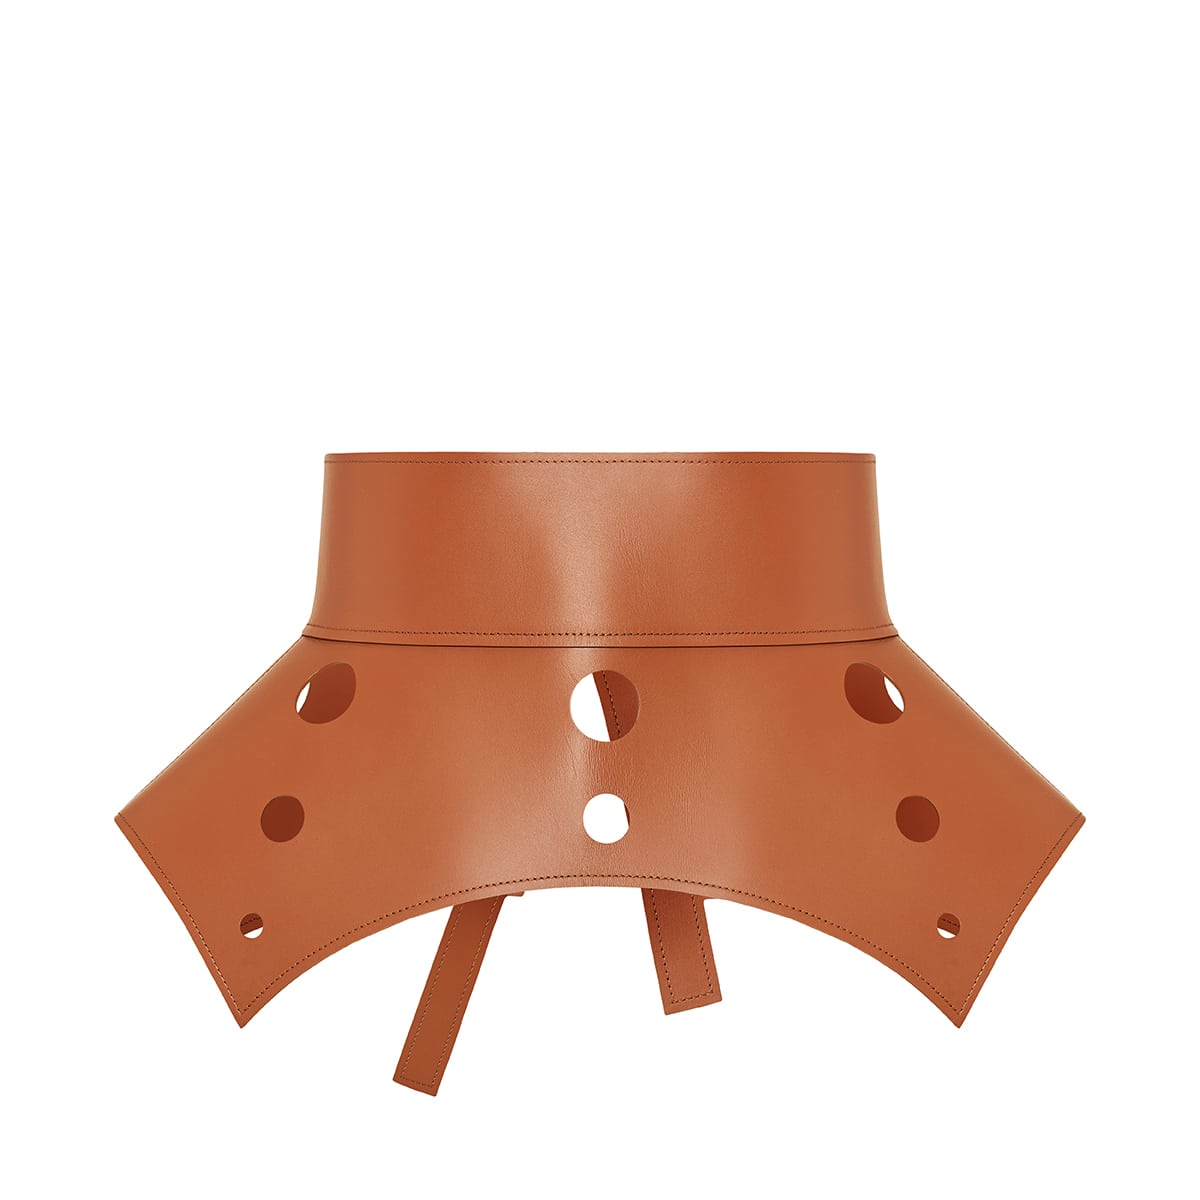 Obi leather corset belt